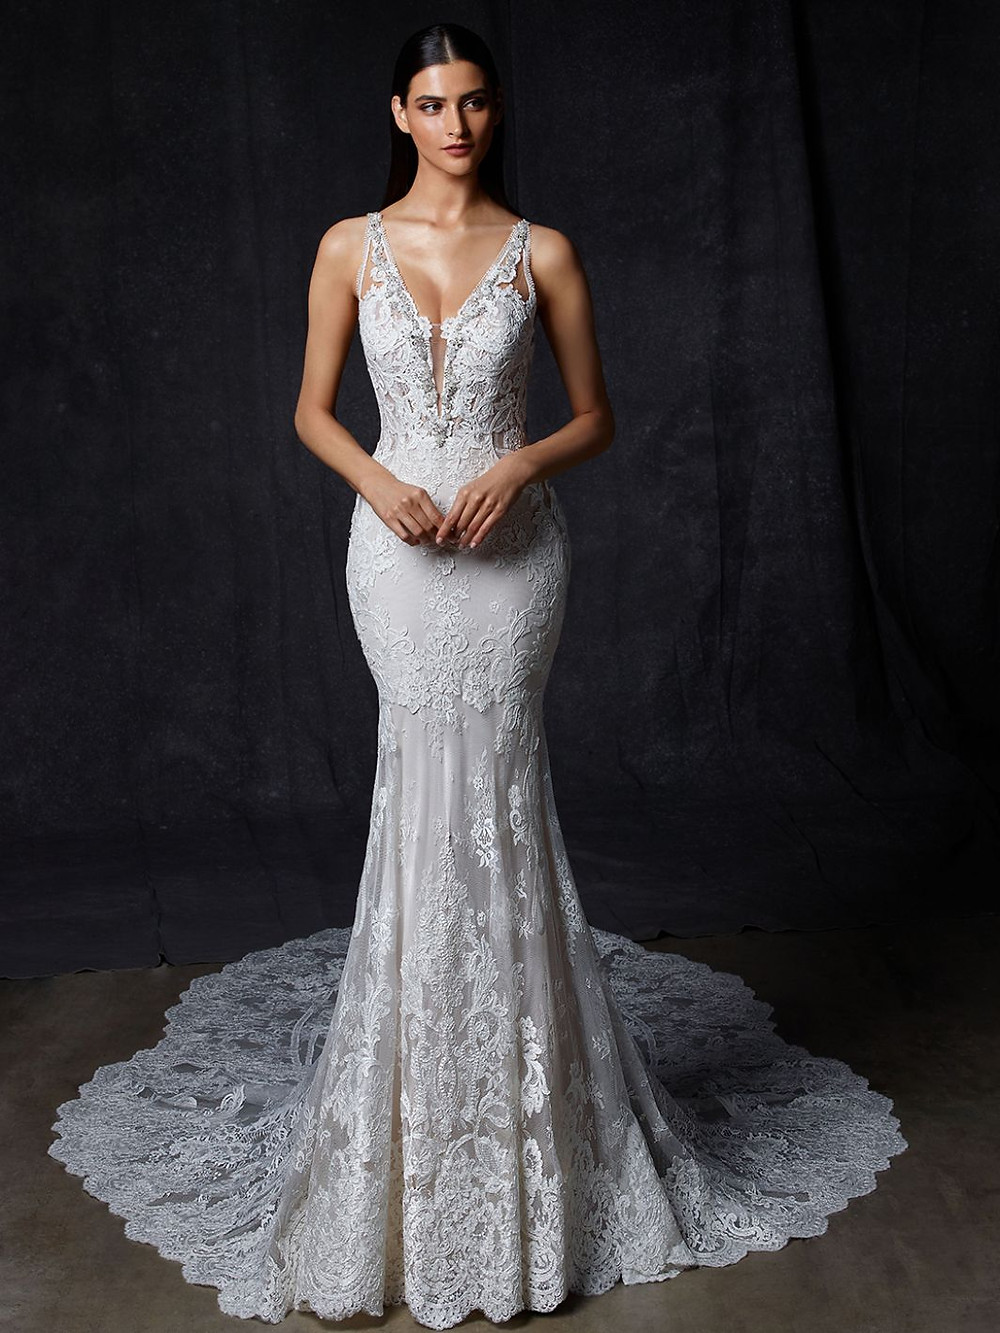 An Enzoani v neck, lace mermaid wedding dress with straps and a long train